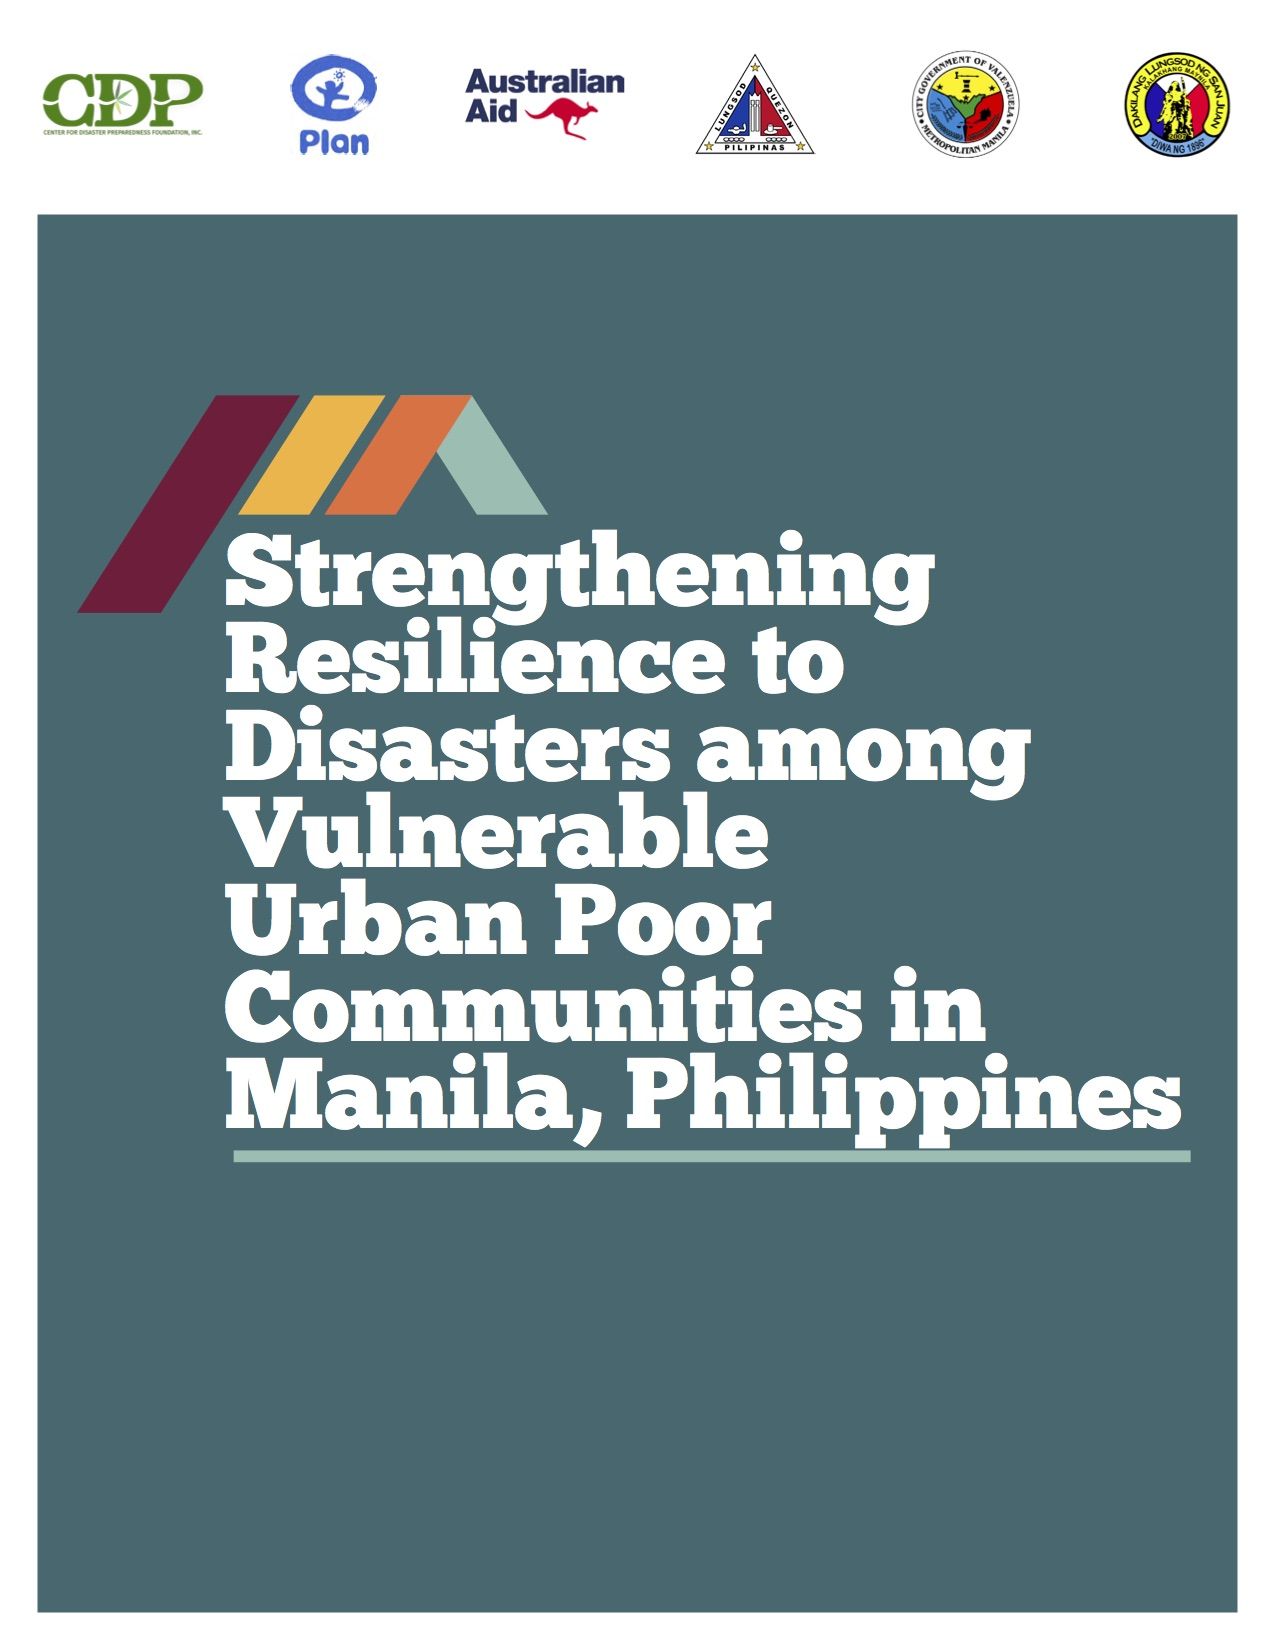 Strengthening Resilience to Disasters Among Vulnerable Urban Poor Communities in Manila